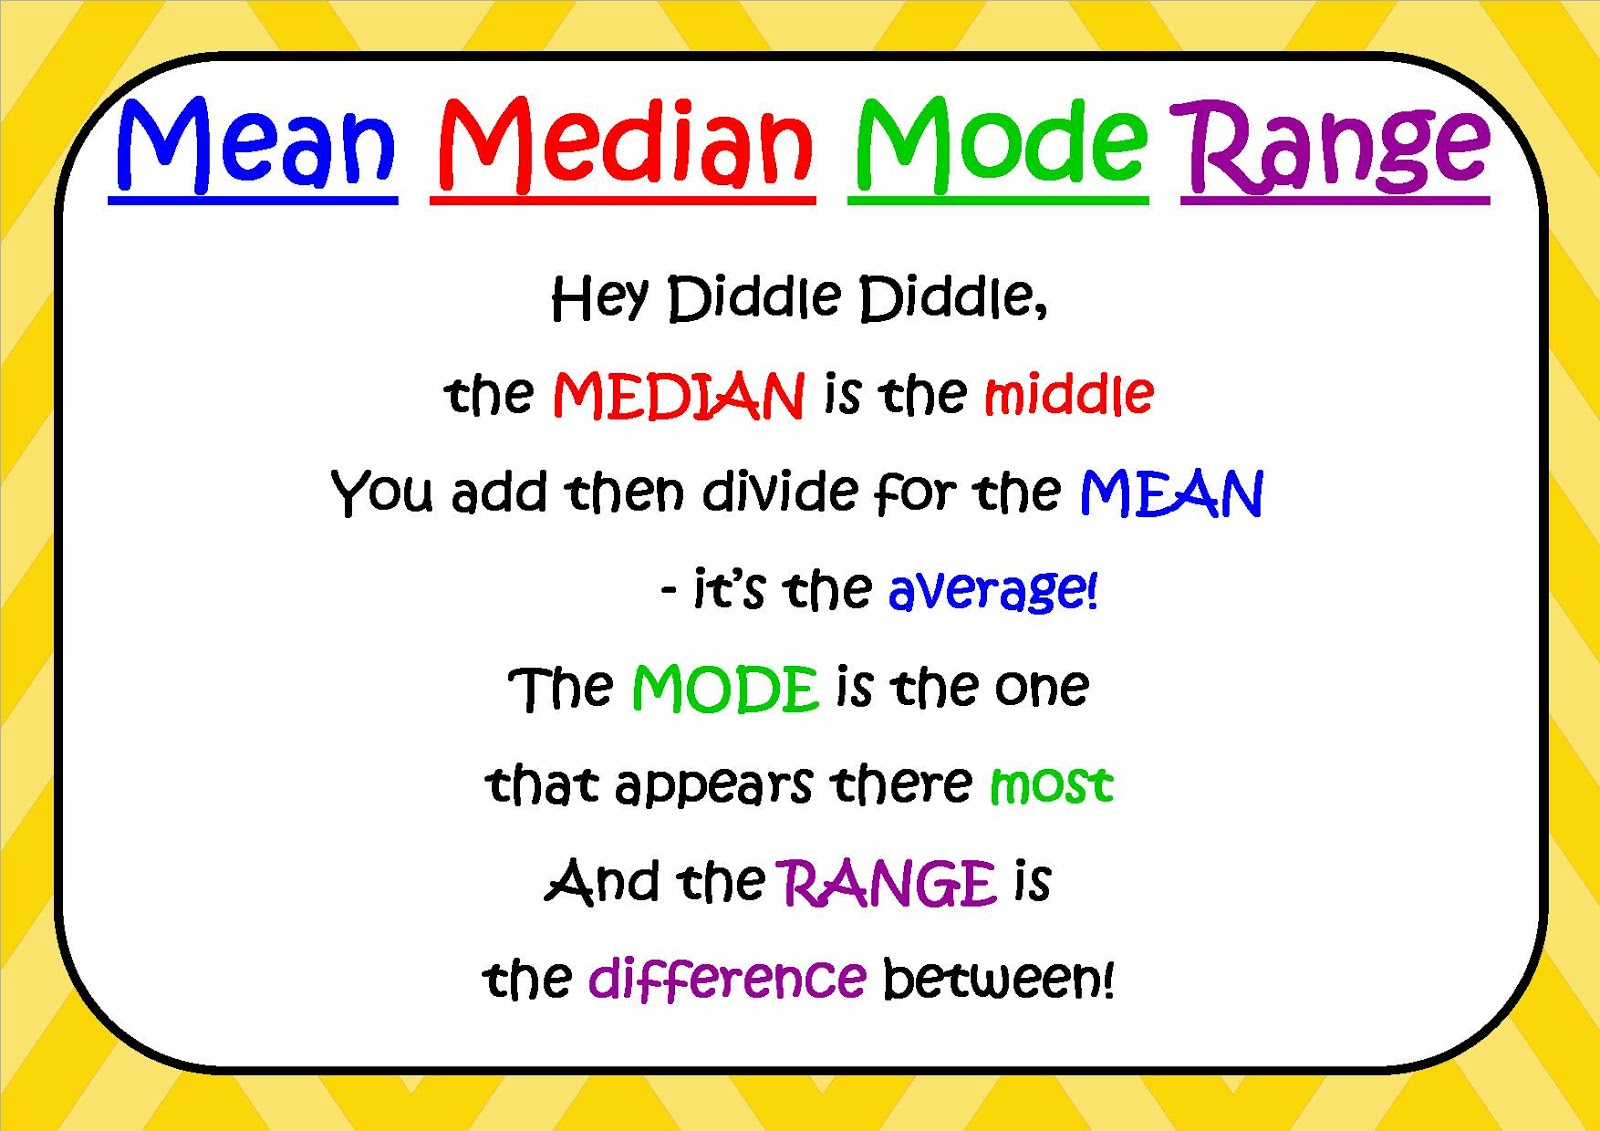 73 SYMBOL OF MEAN MEDIAN MODE, MODE OF MEAN MEDIAN SYMBOL